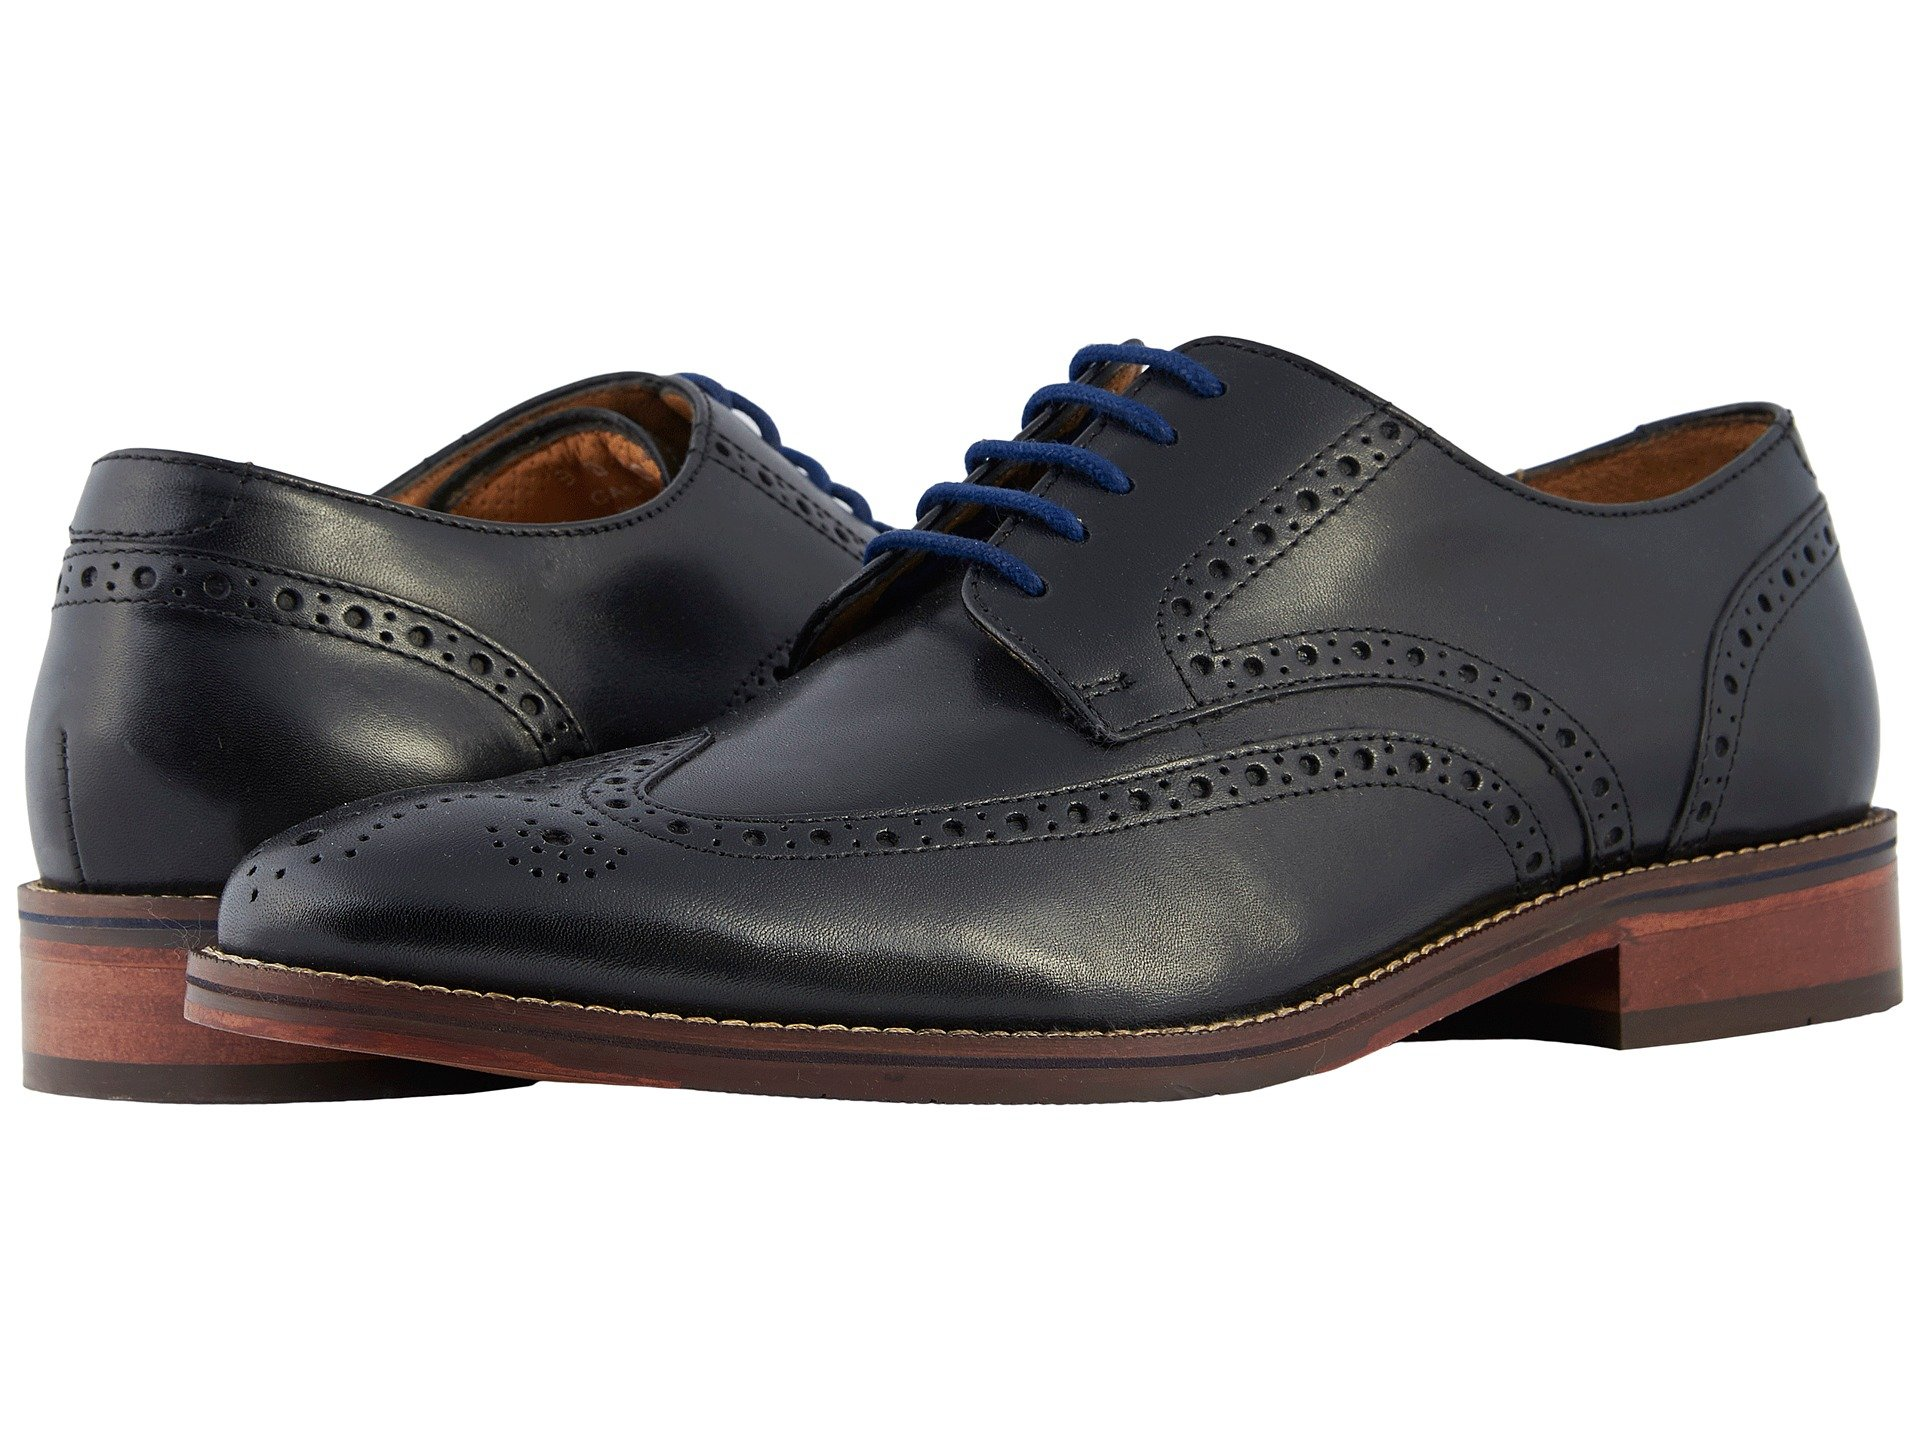 Florsheim Salerno Wingtip Oxford